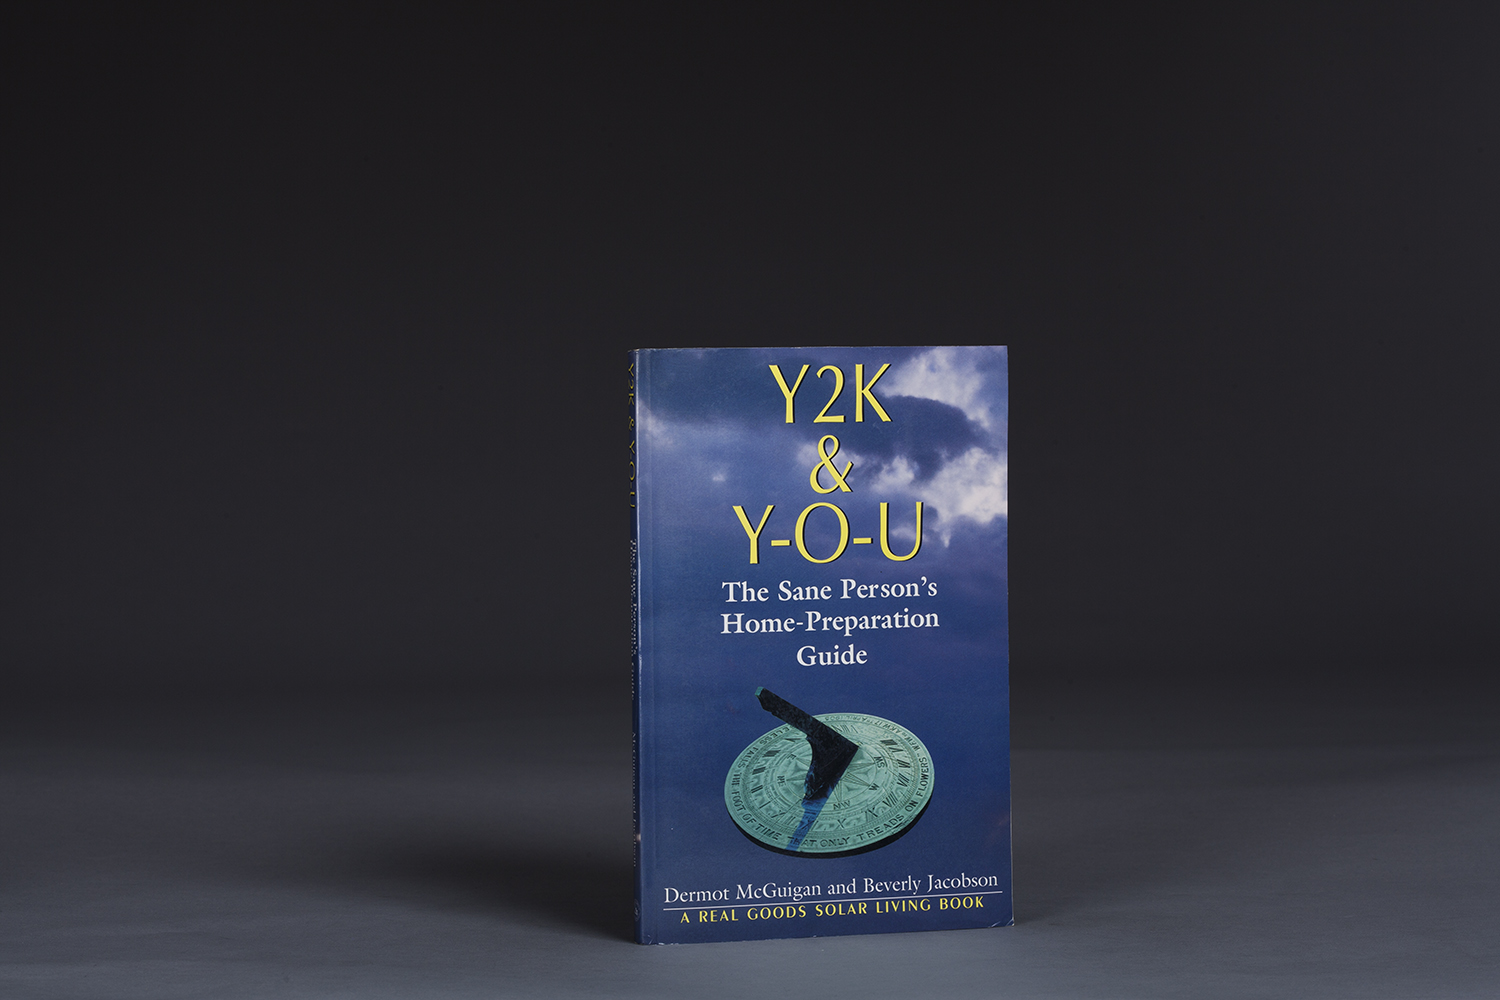 Y2k & Y-O-U The Sane Person's Home Preparation Guide - 0513 Cover.jpg